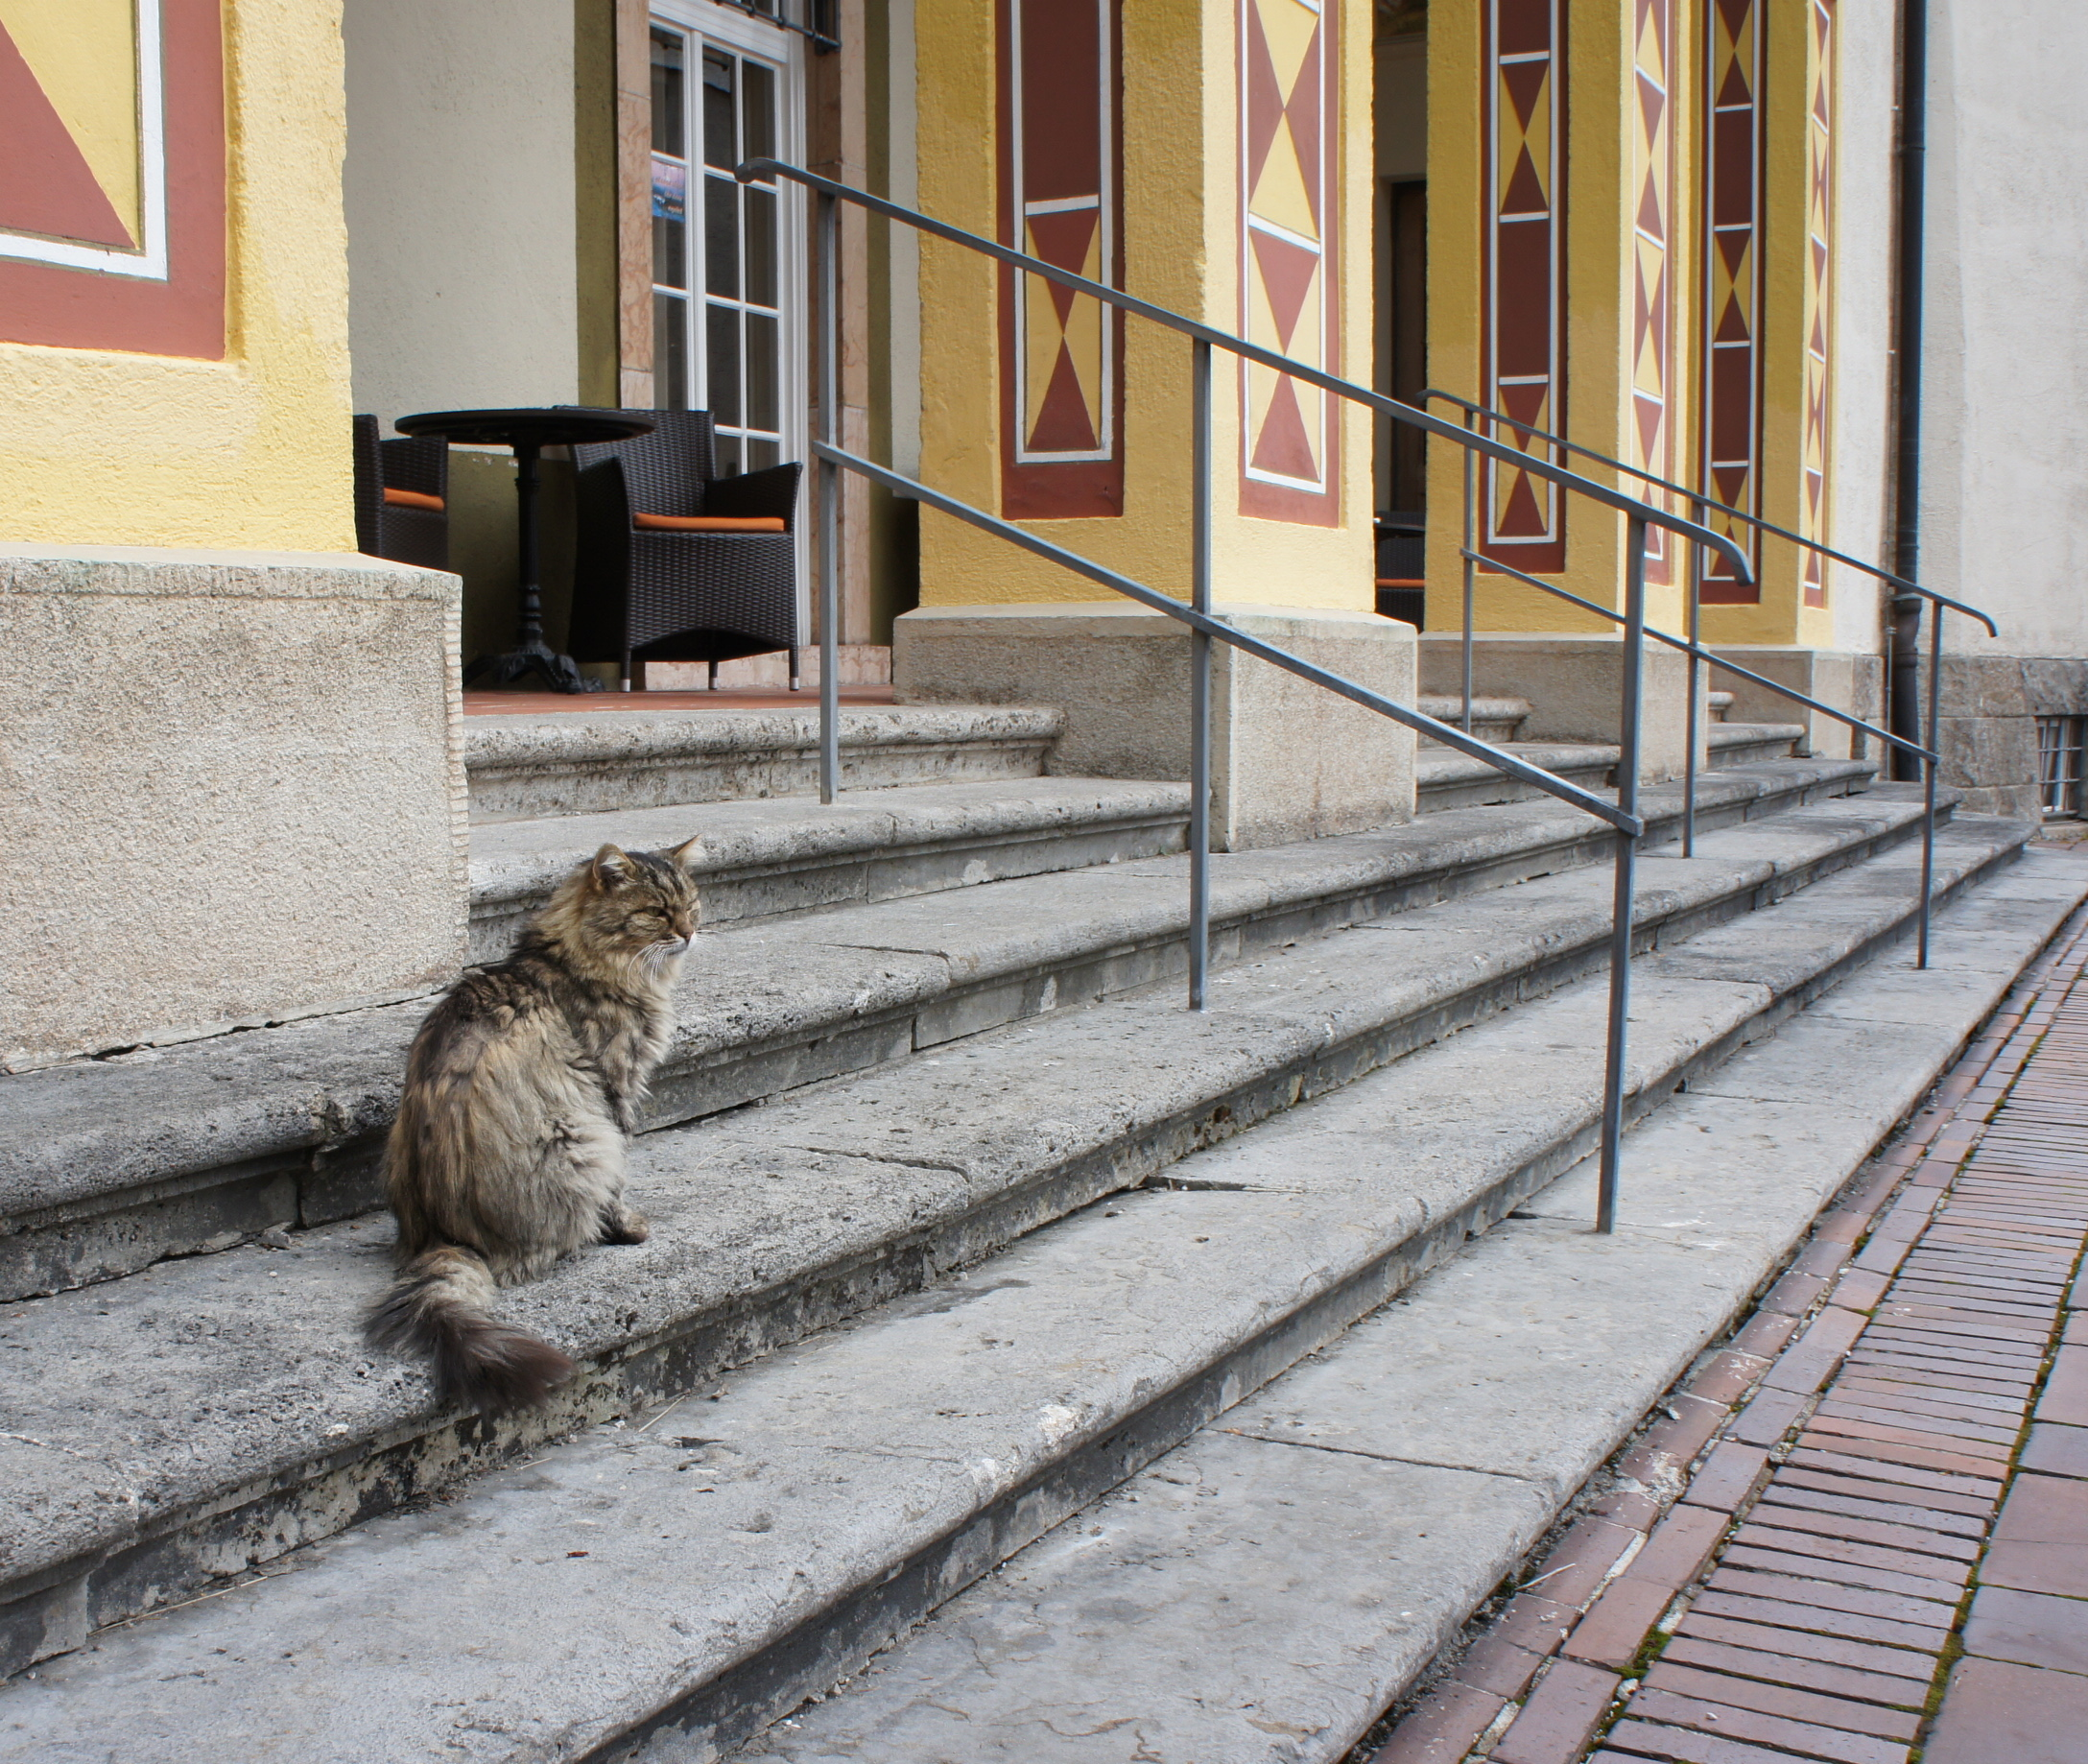 The castle cat